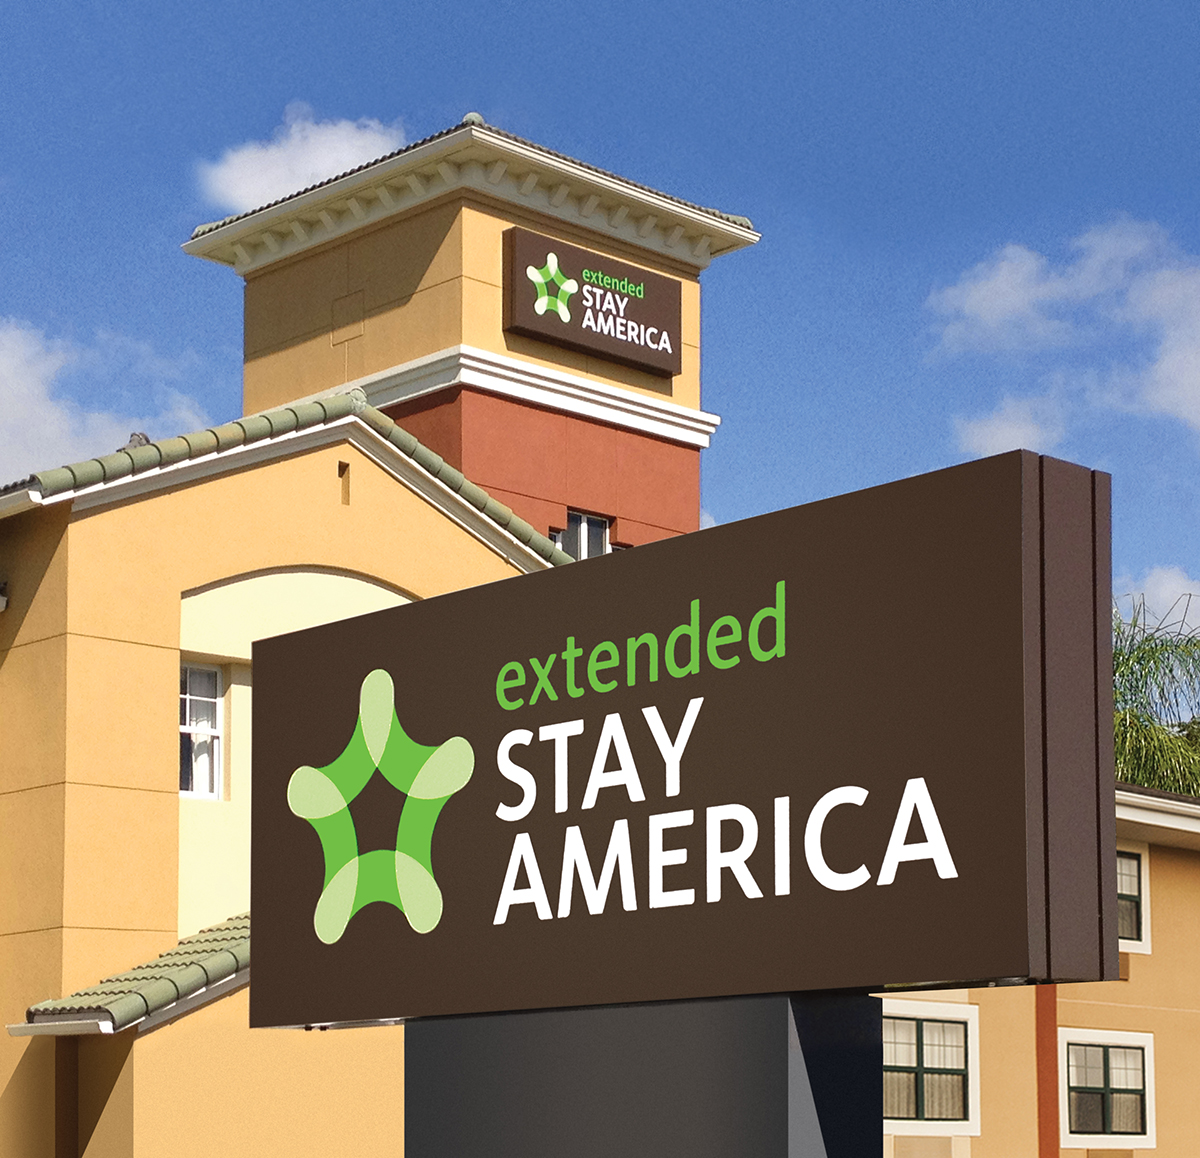 Extended Stay America is the convenient, affordable hotel choice for savvy business and leisure travelers alike. All hotels are either owned and/or managed by Extended Stay America, Inc. or one of its affiliates, or owned and operated by a franchisee of Extended Stay America, Inc. or one of its affiliates.